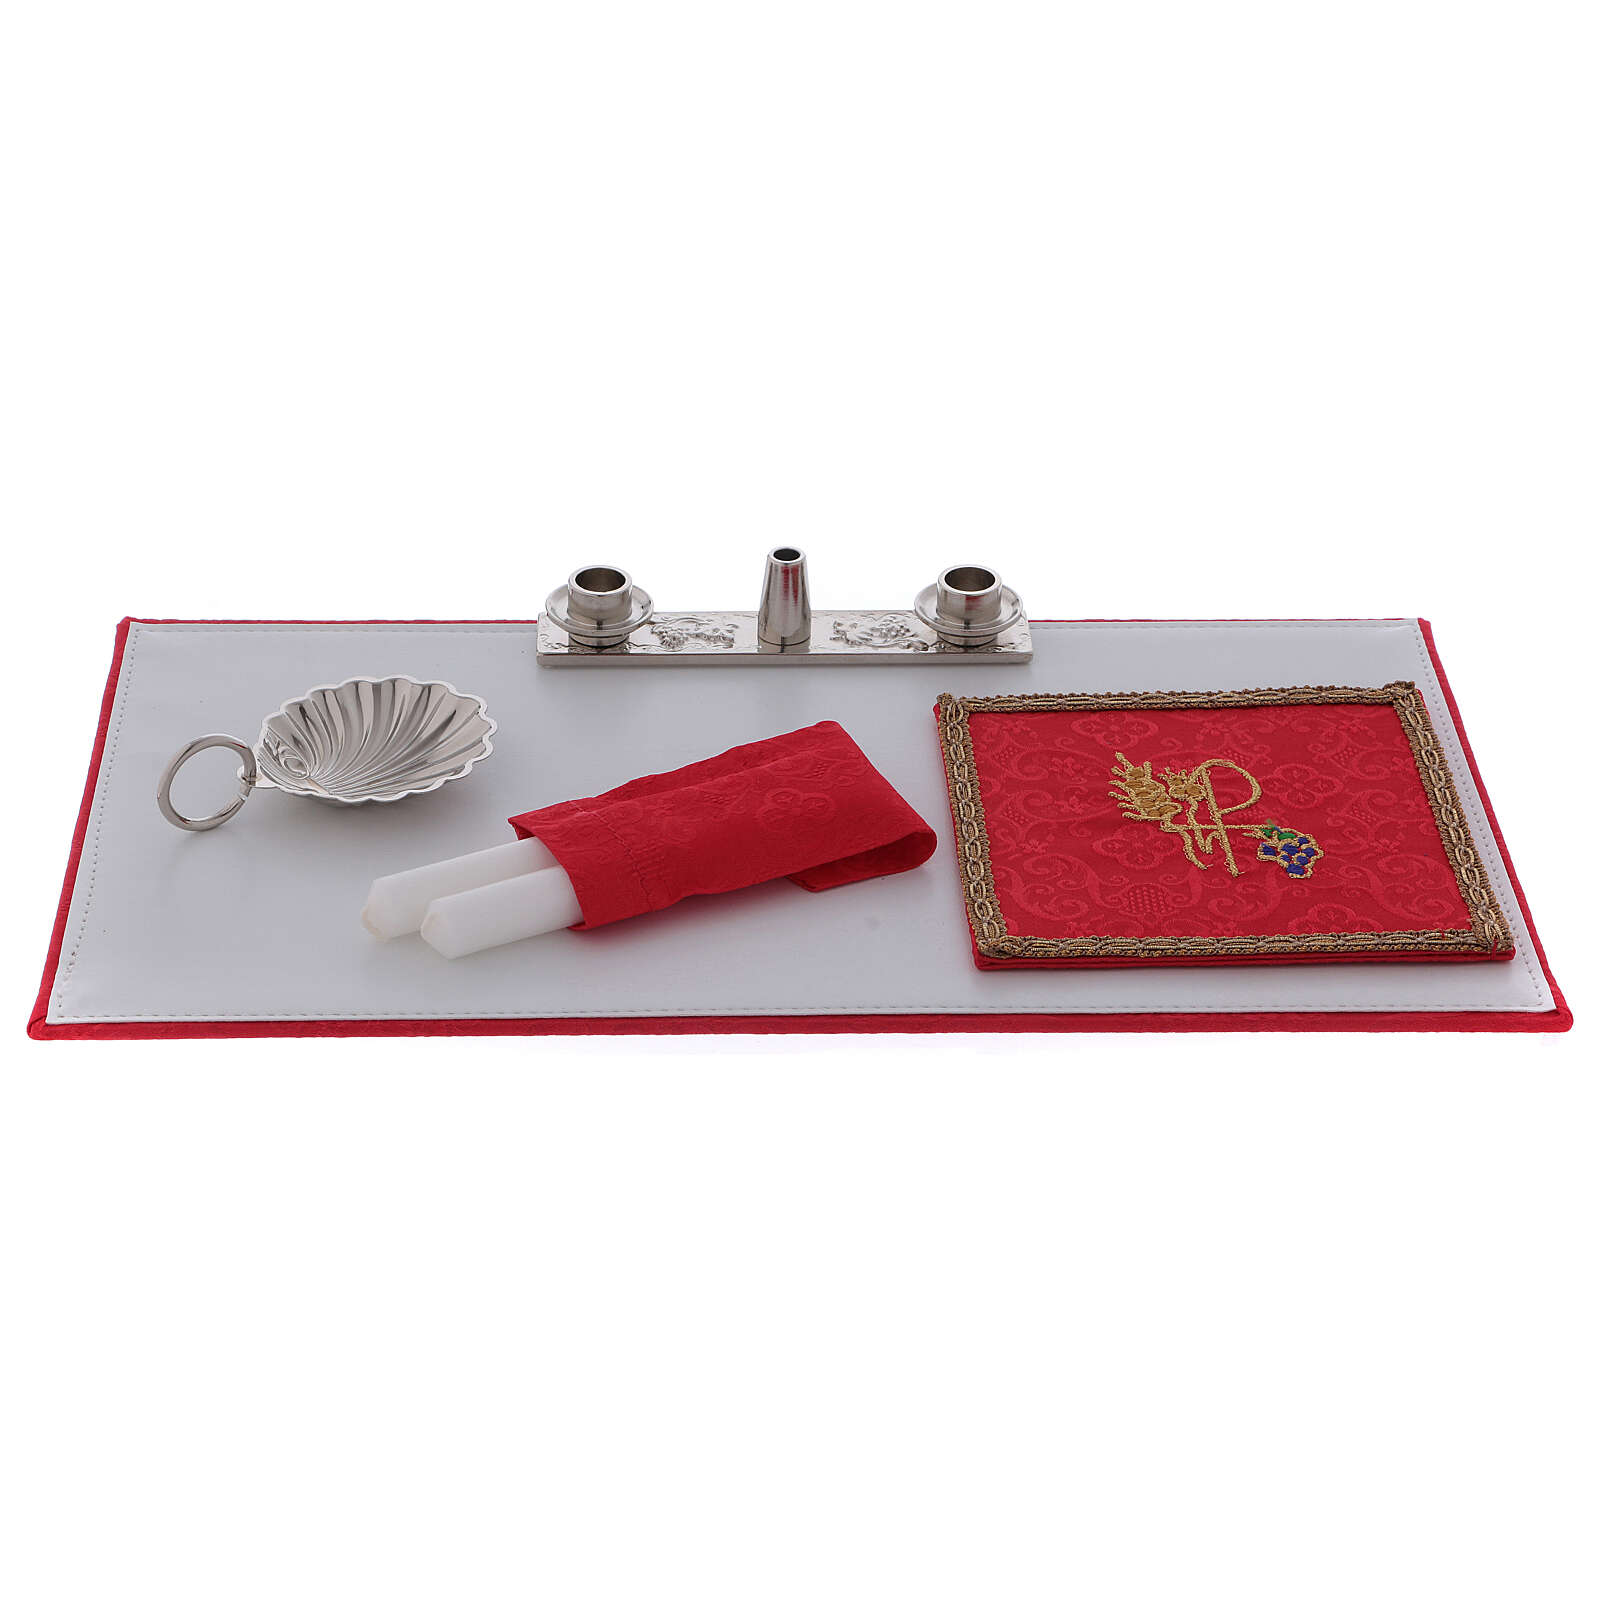 ABS and red satin mass kit 3